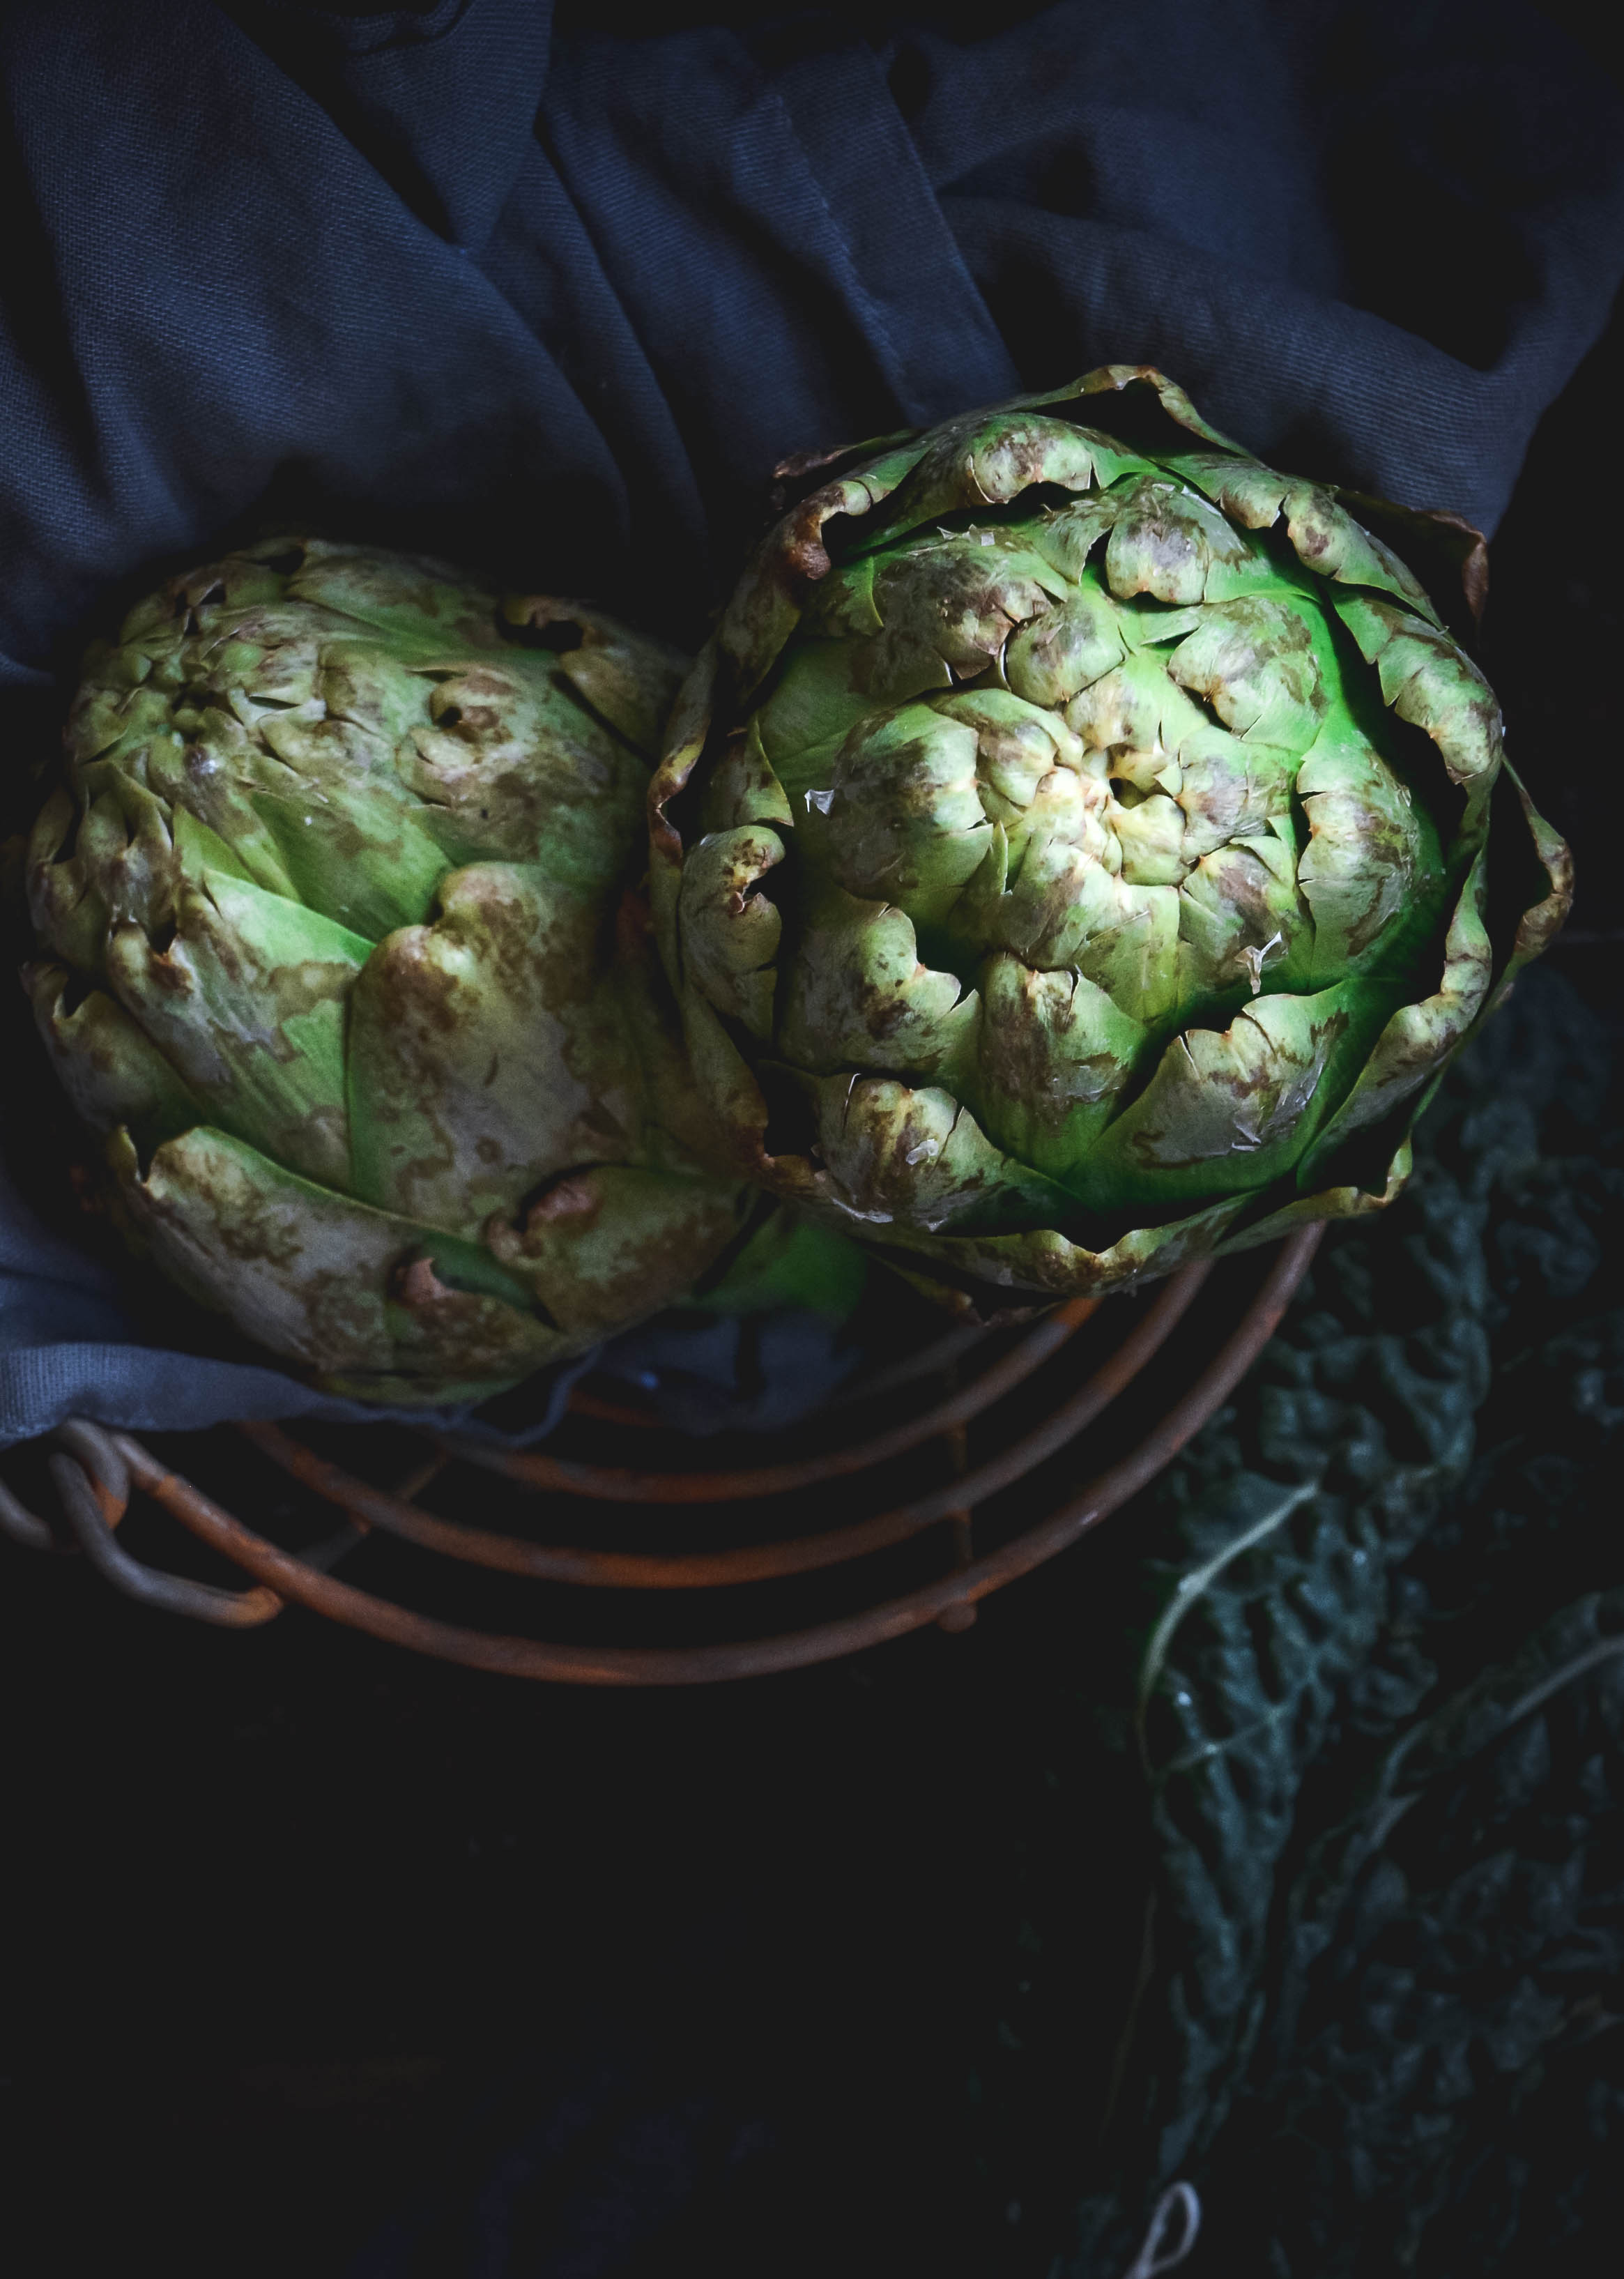 artichokes in basket with napkin